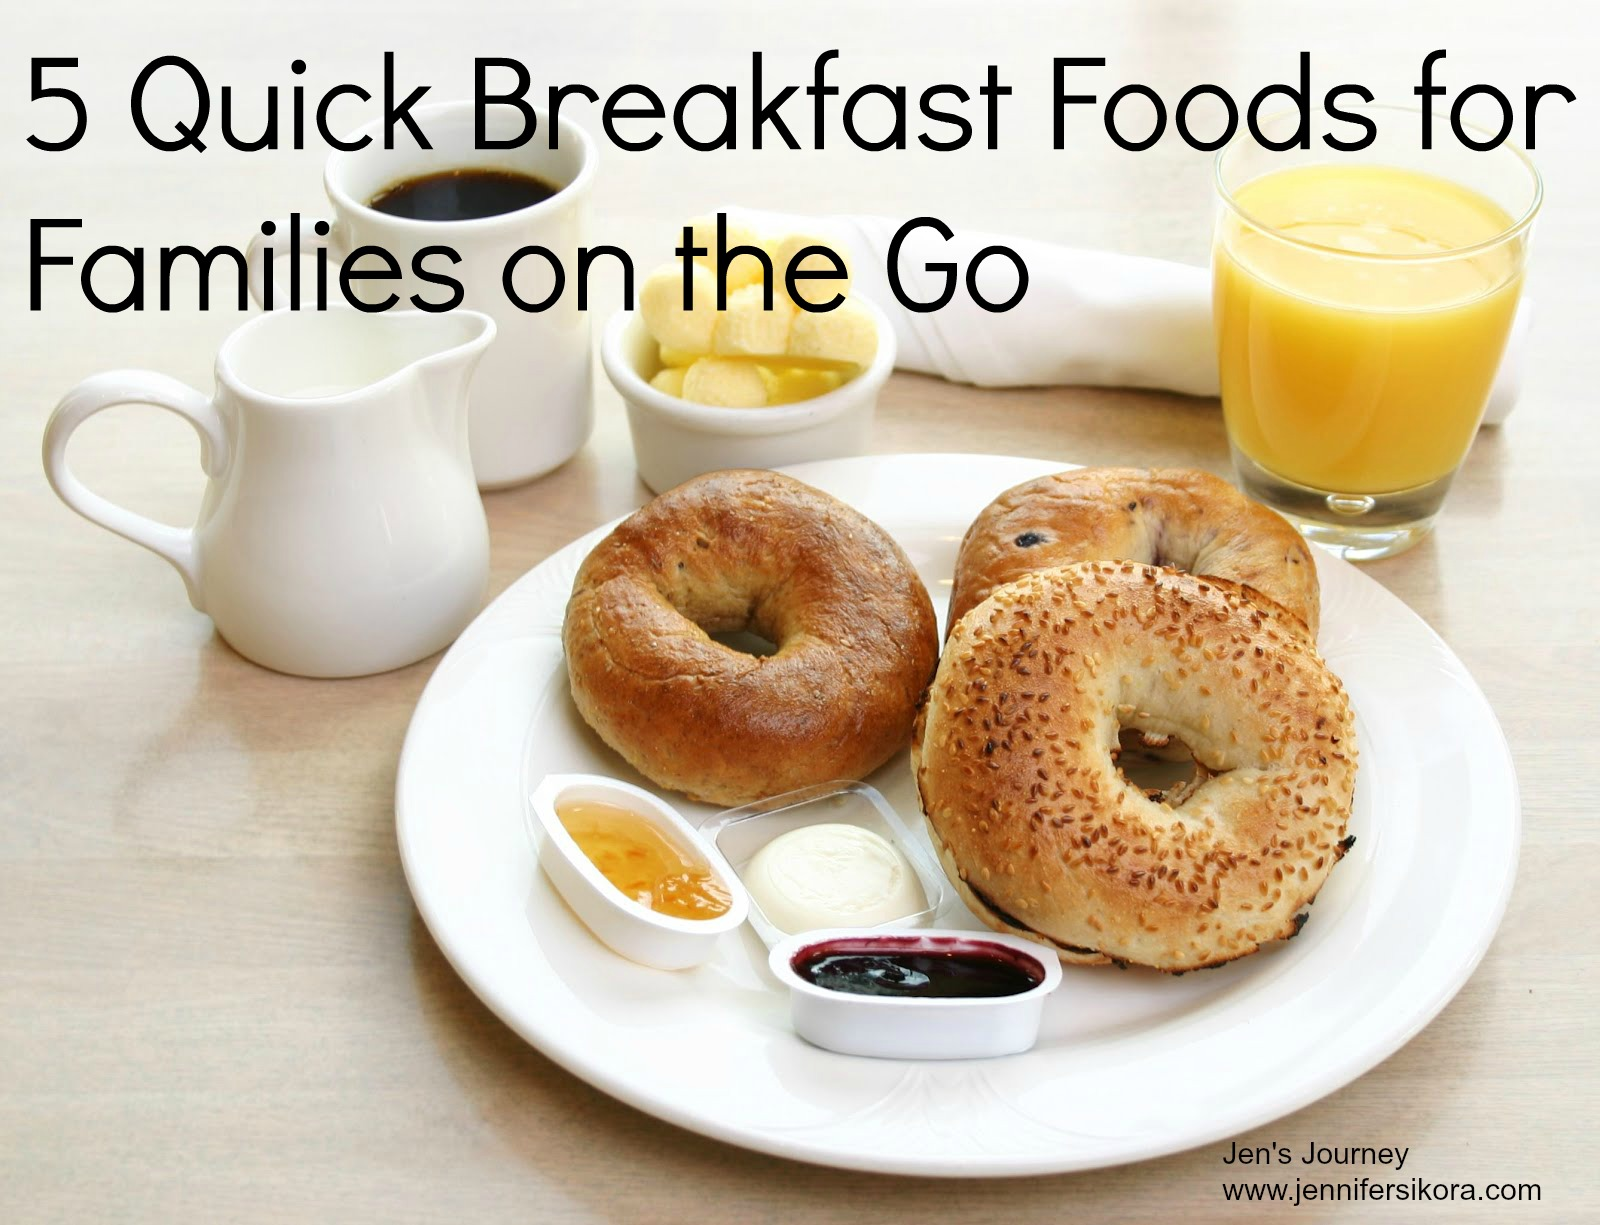 5 Quick Breakfast Foods for Families on the Go